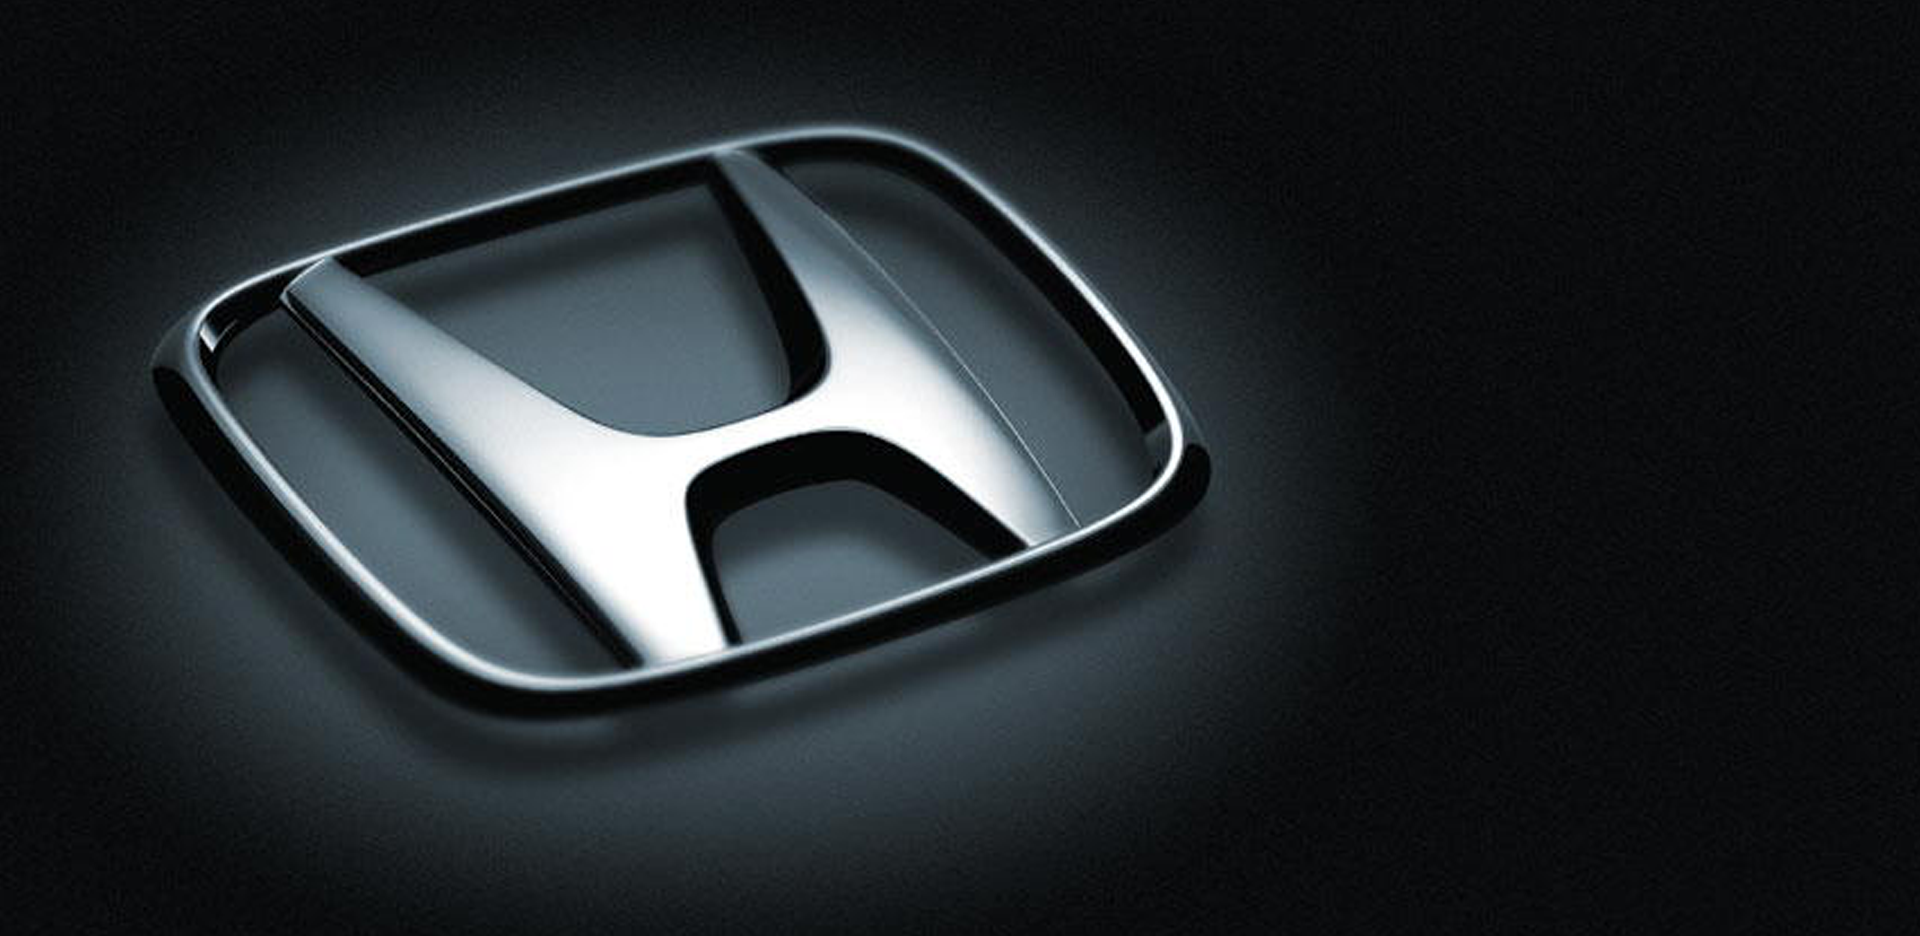 Wide HD Honda Wallpaper | BsnSCB.com 100% Quality HD